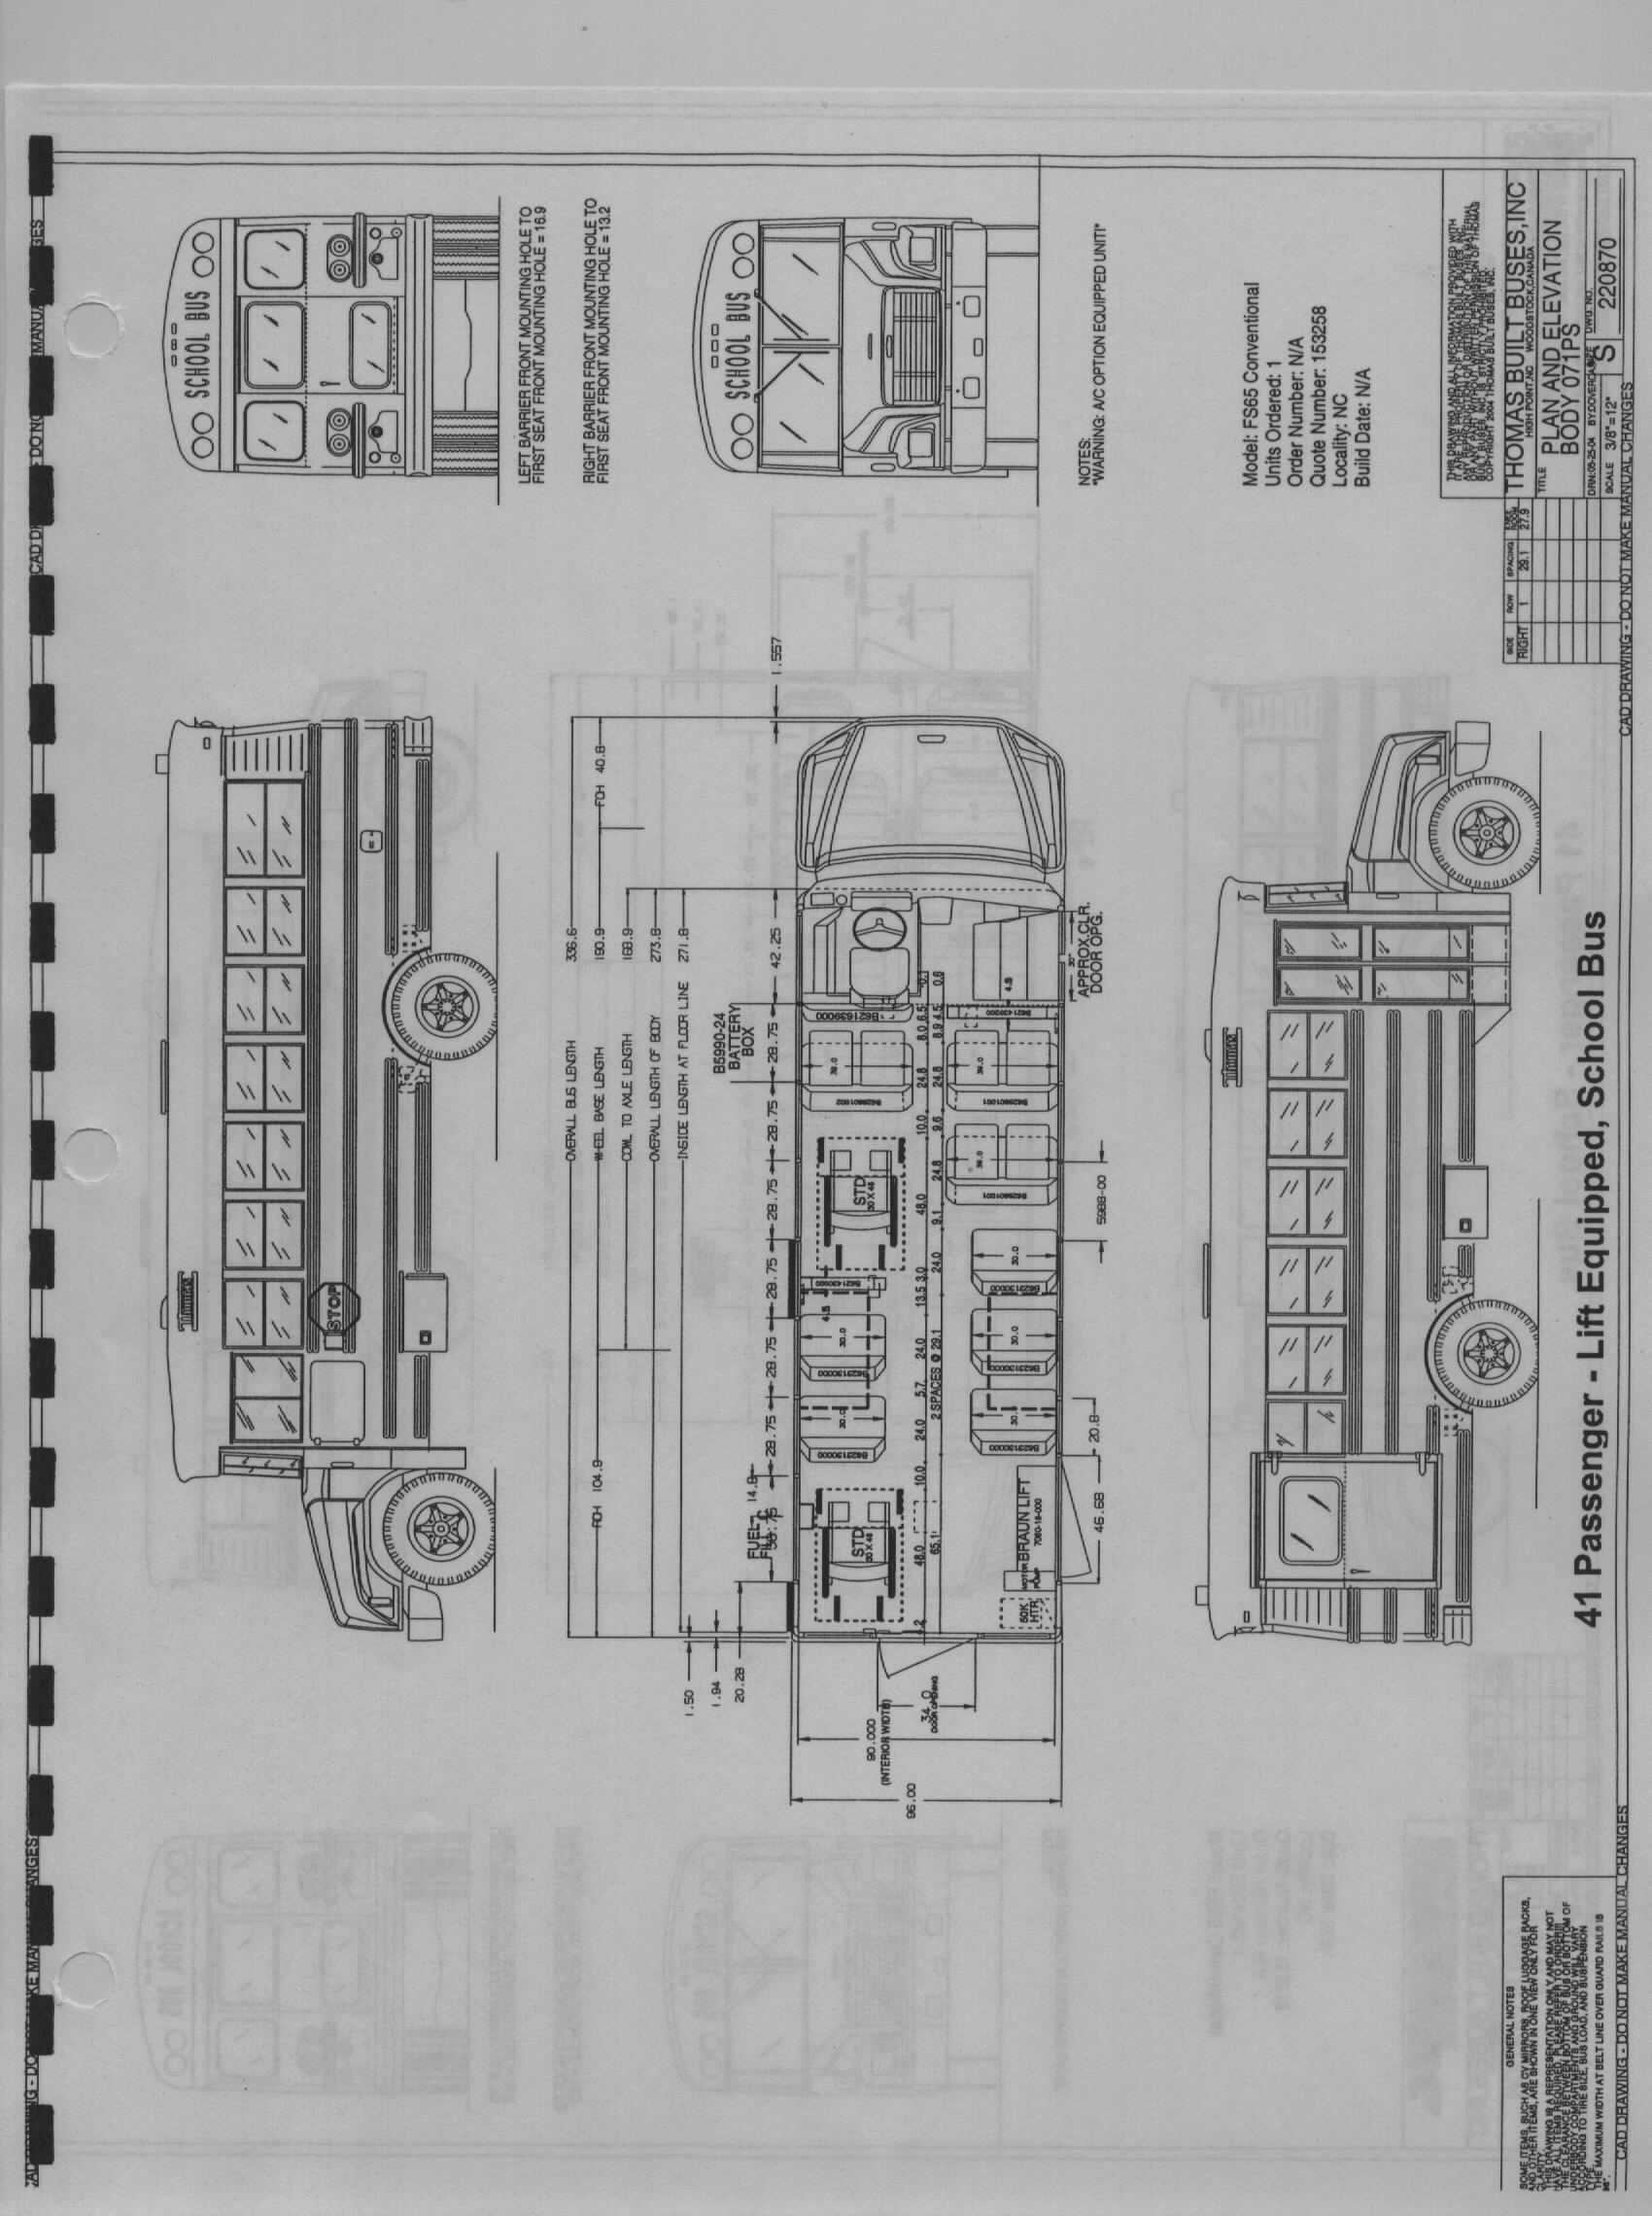 school bus dimensions diagram school bus models school bus motor wiring diagram #13